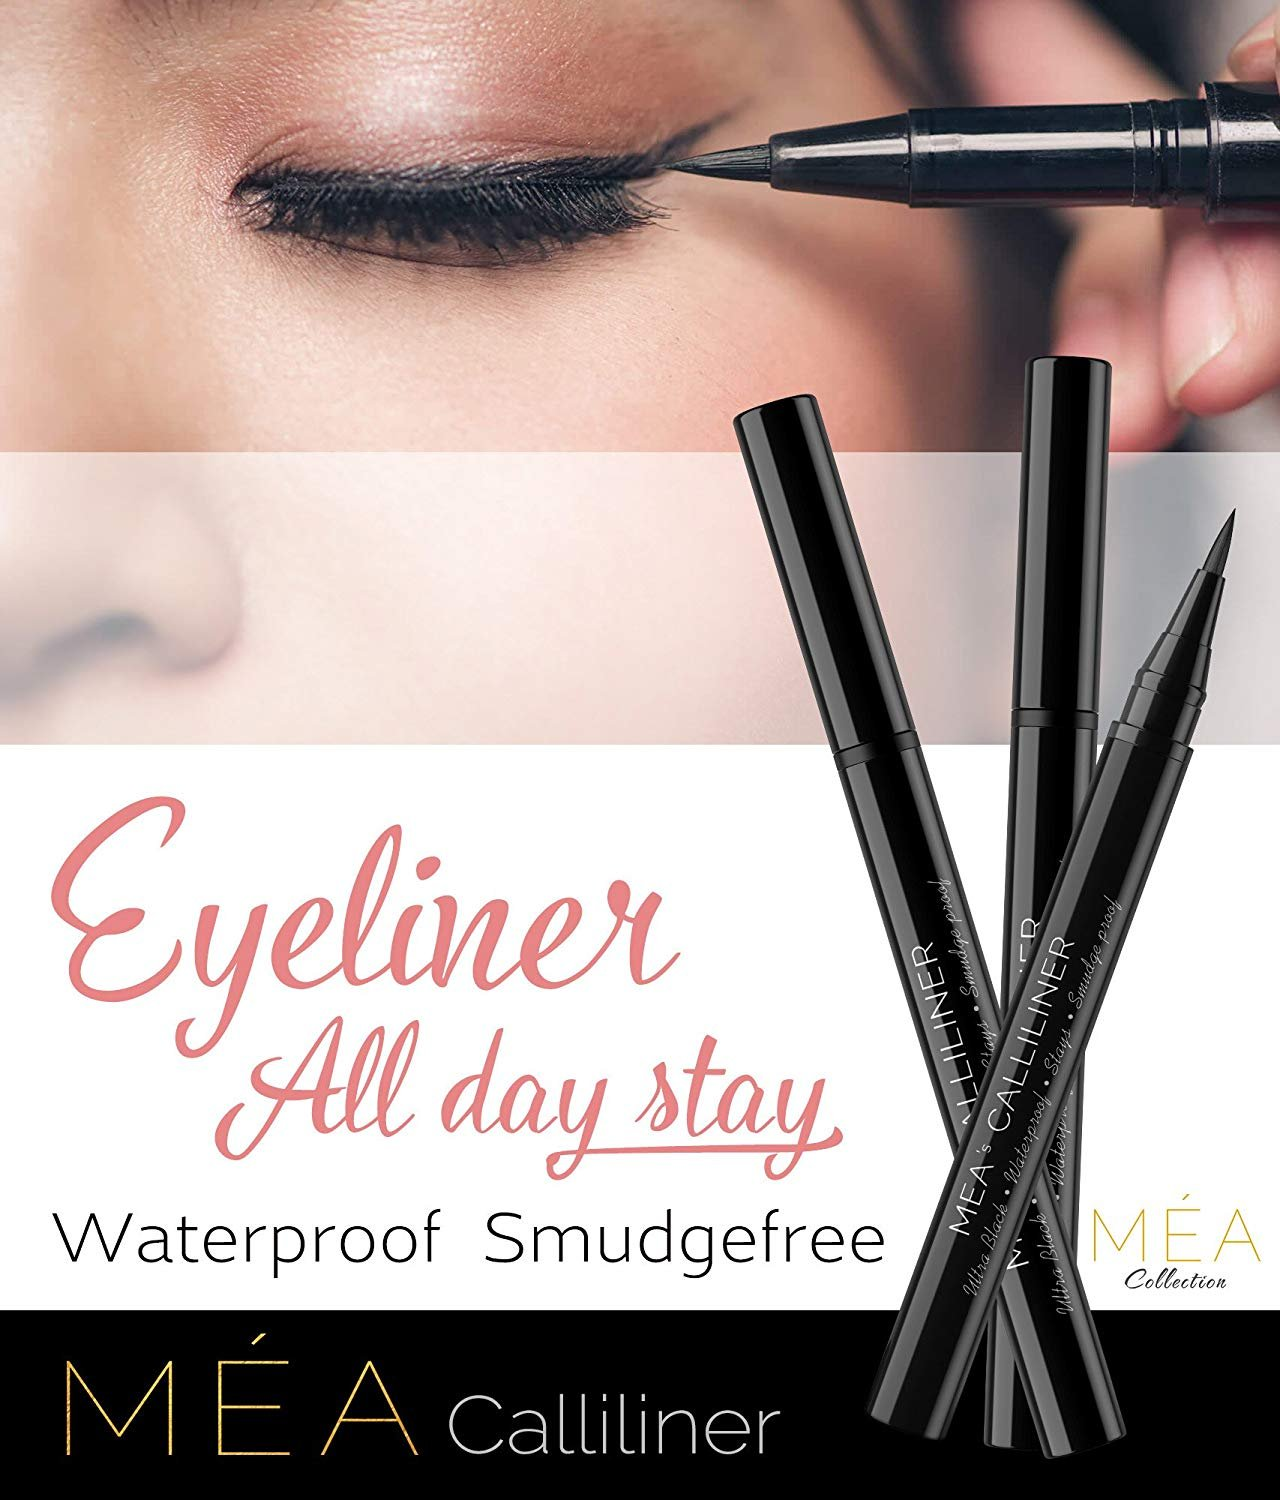 PRIME WEEK SPECIAL - Waterproof Liquid Eyeliner - Mea's Calliliner Semi Permanent Ultra Black Eye Liner, Prestige All Day Stay Brush giving you that Wild & Intense Covergirl Beauty - Glitter free Glos